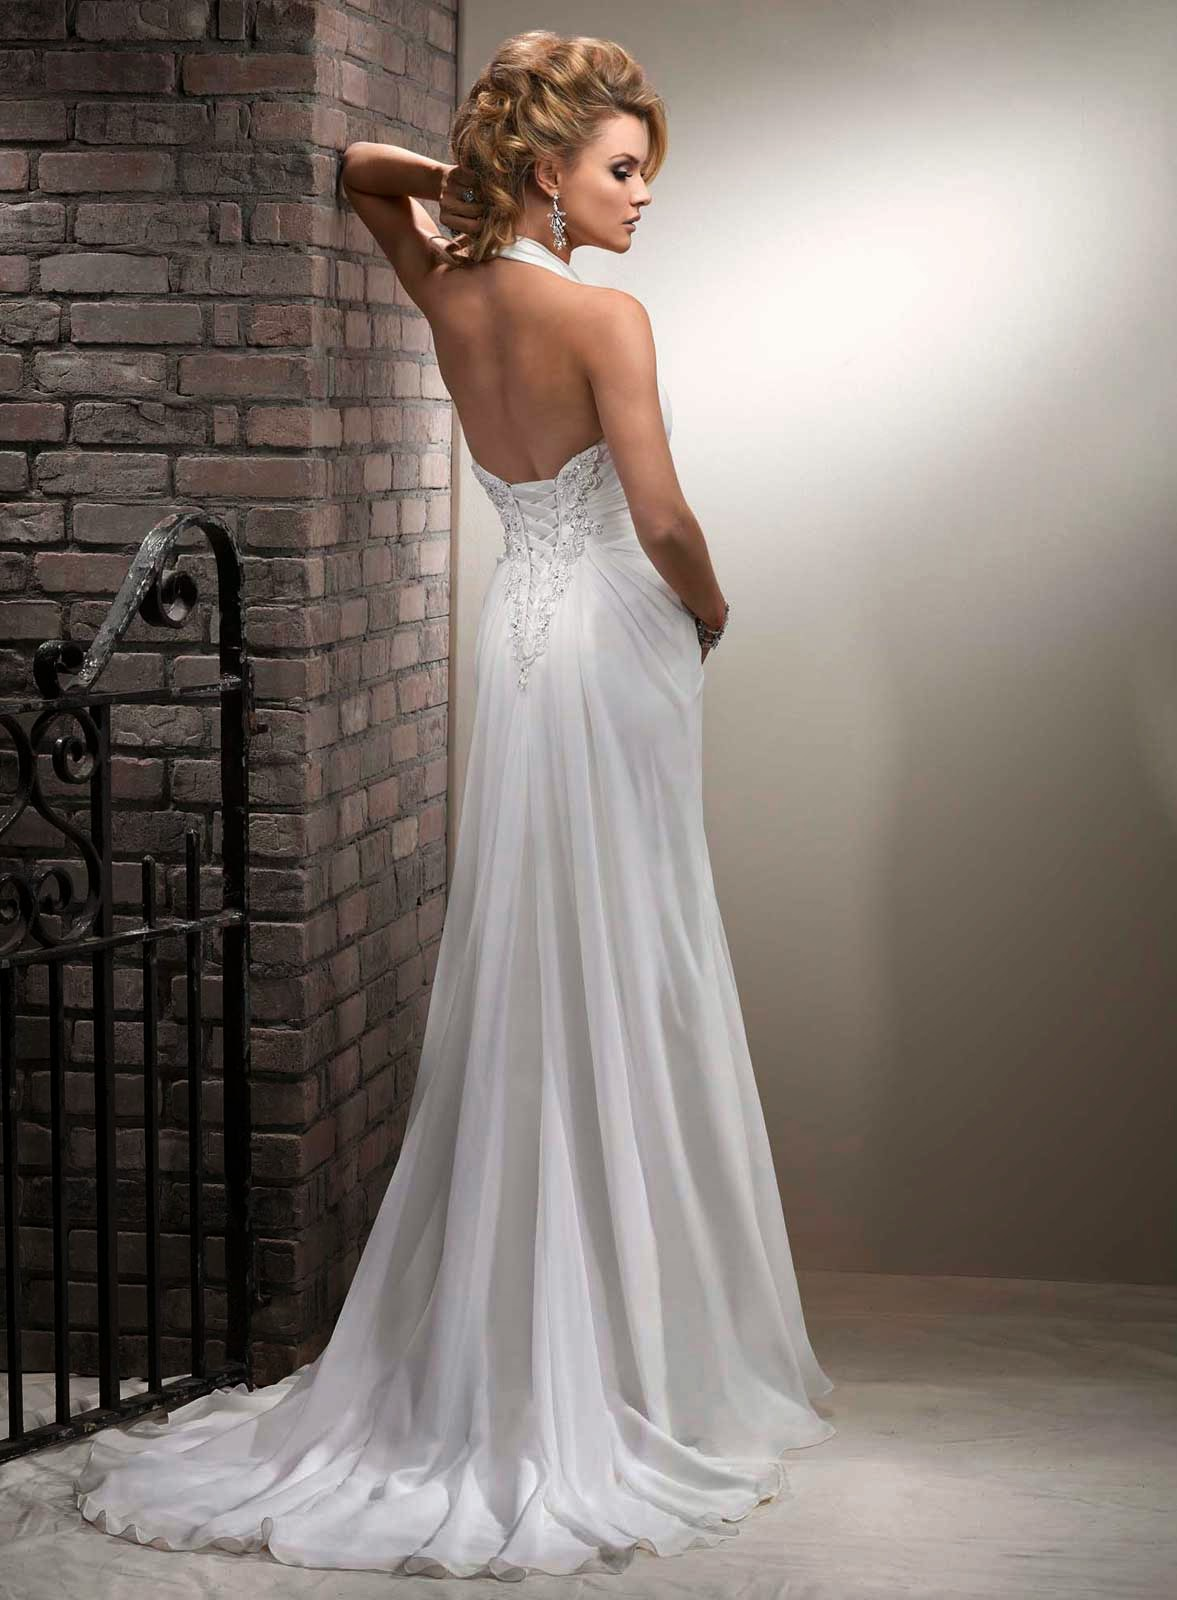 Wedding Dresses For The Mature Bride : Casual wedding dresses ideas for older brides